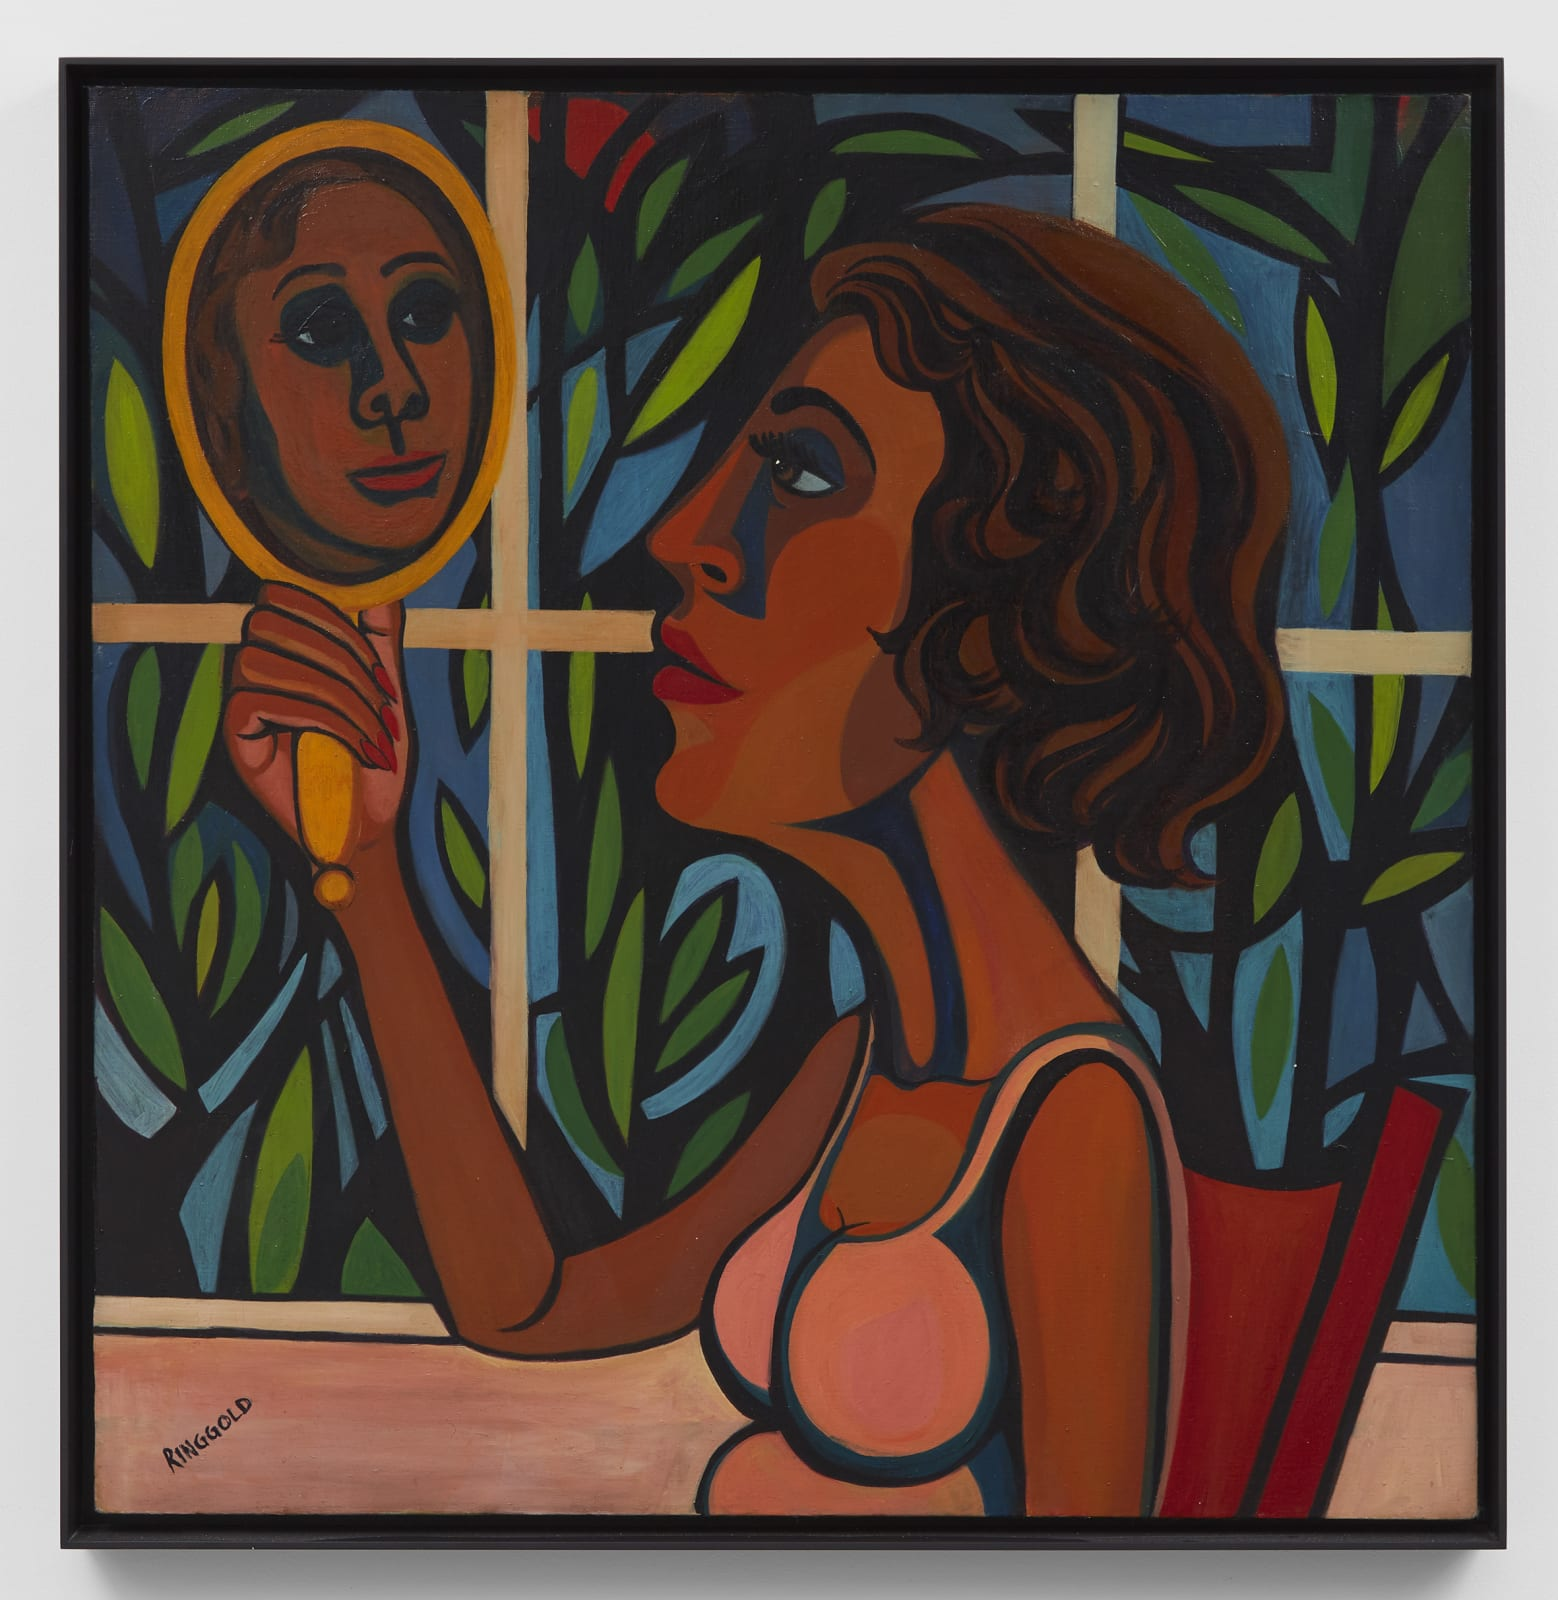 Faith Ringgold, American People Series #16: Woman Looking in a Mirror, 1966